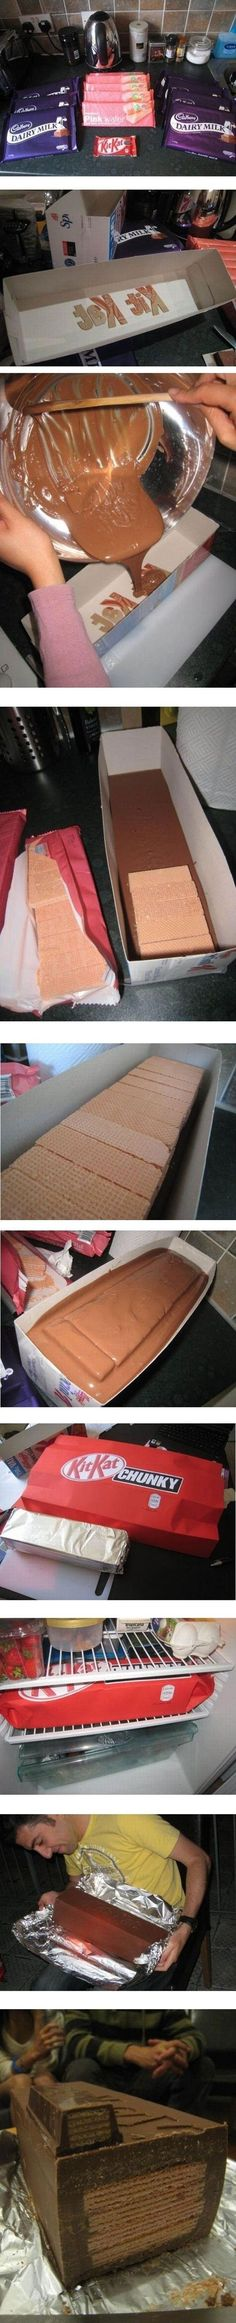 How to make a huge Kit Kat... This might come in handy!